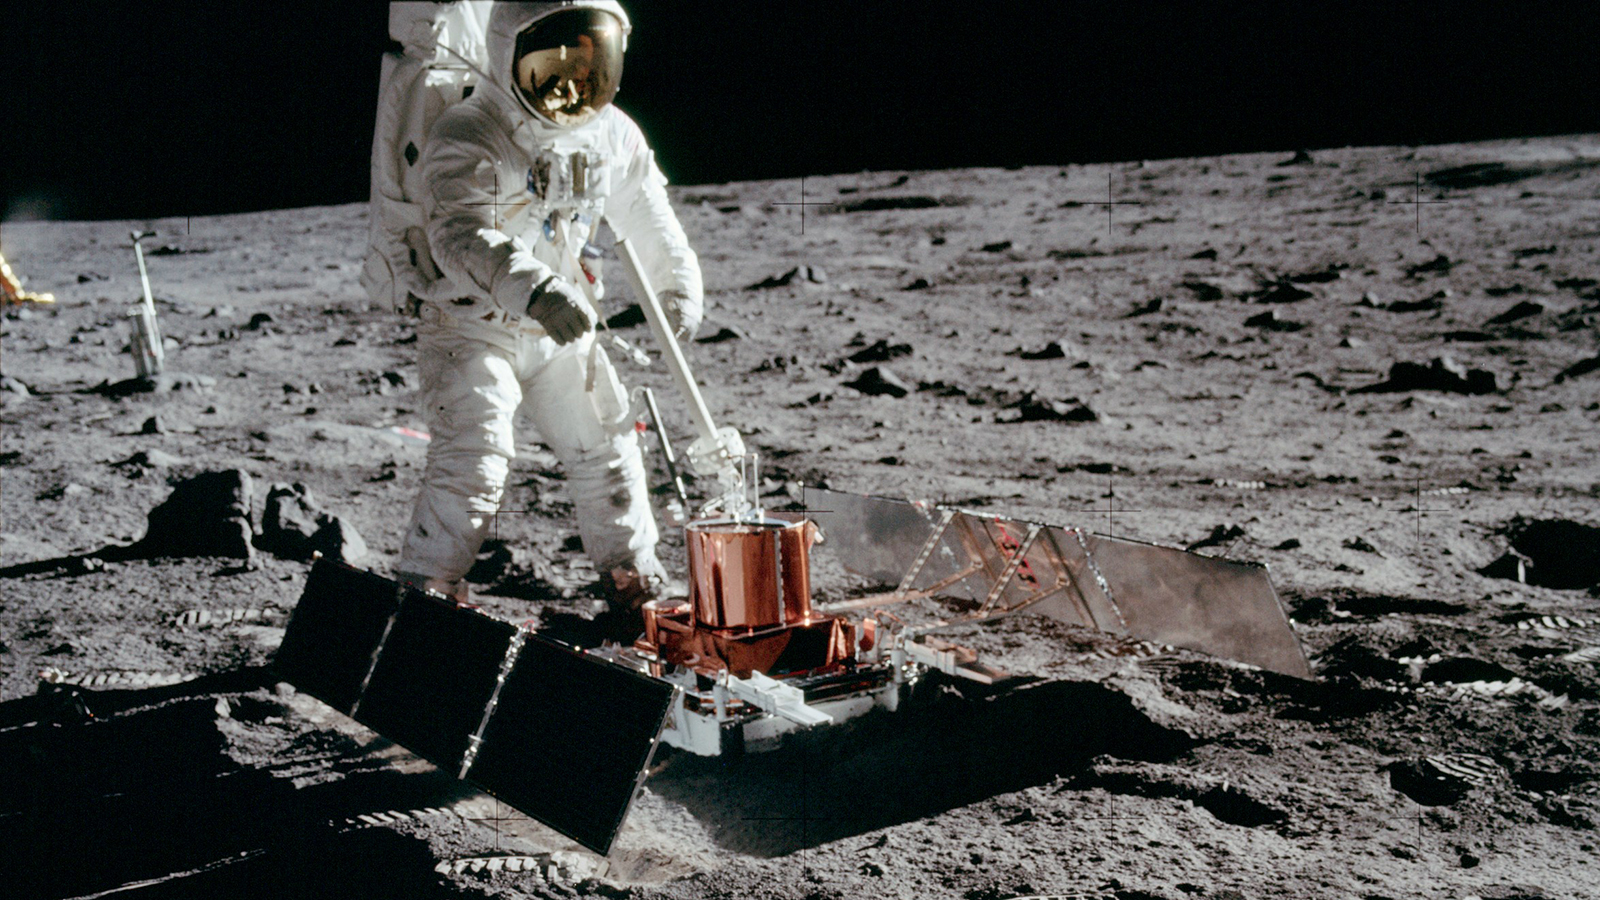 Moon Not Just A Dead Celestial Body - Seismic Activity Detected